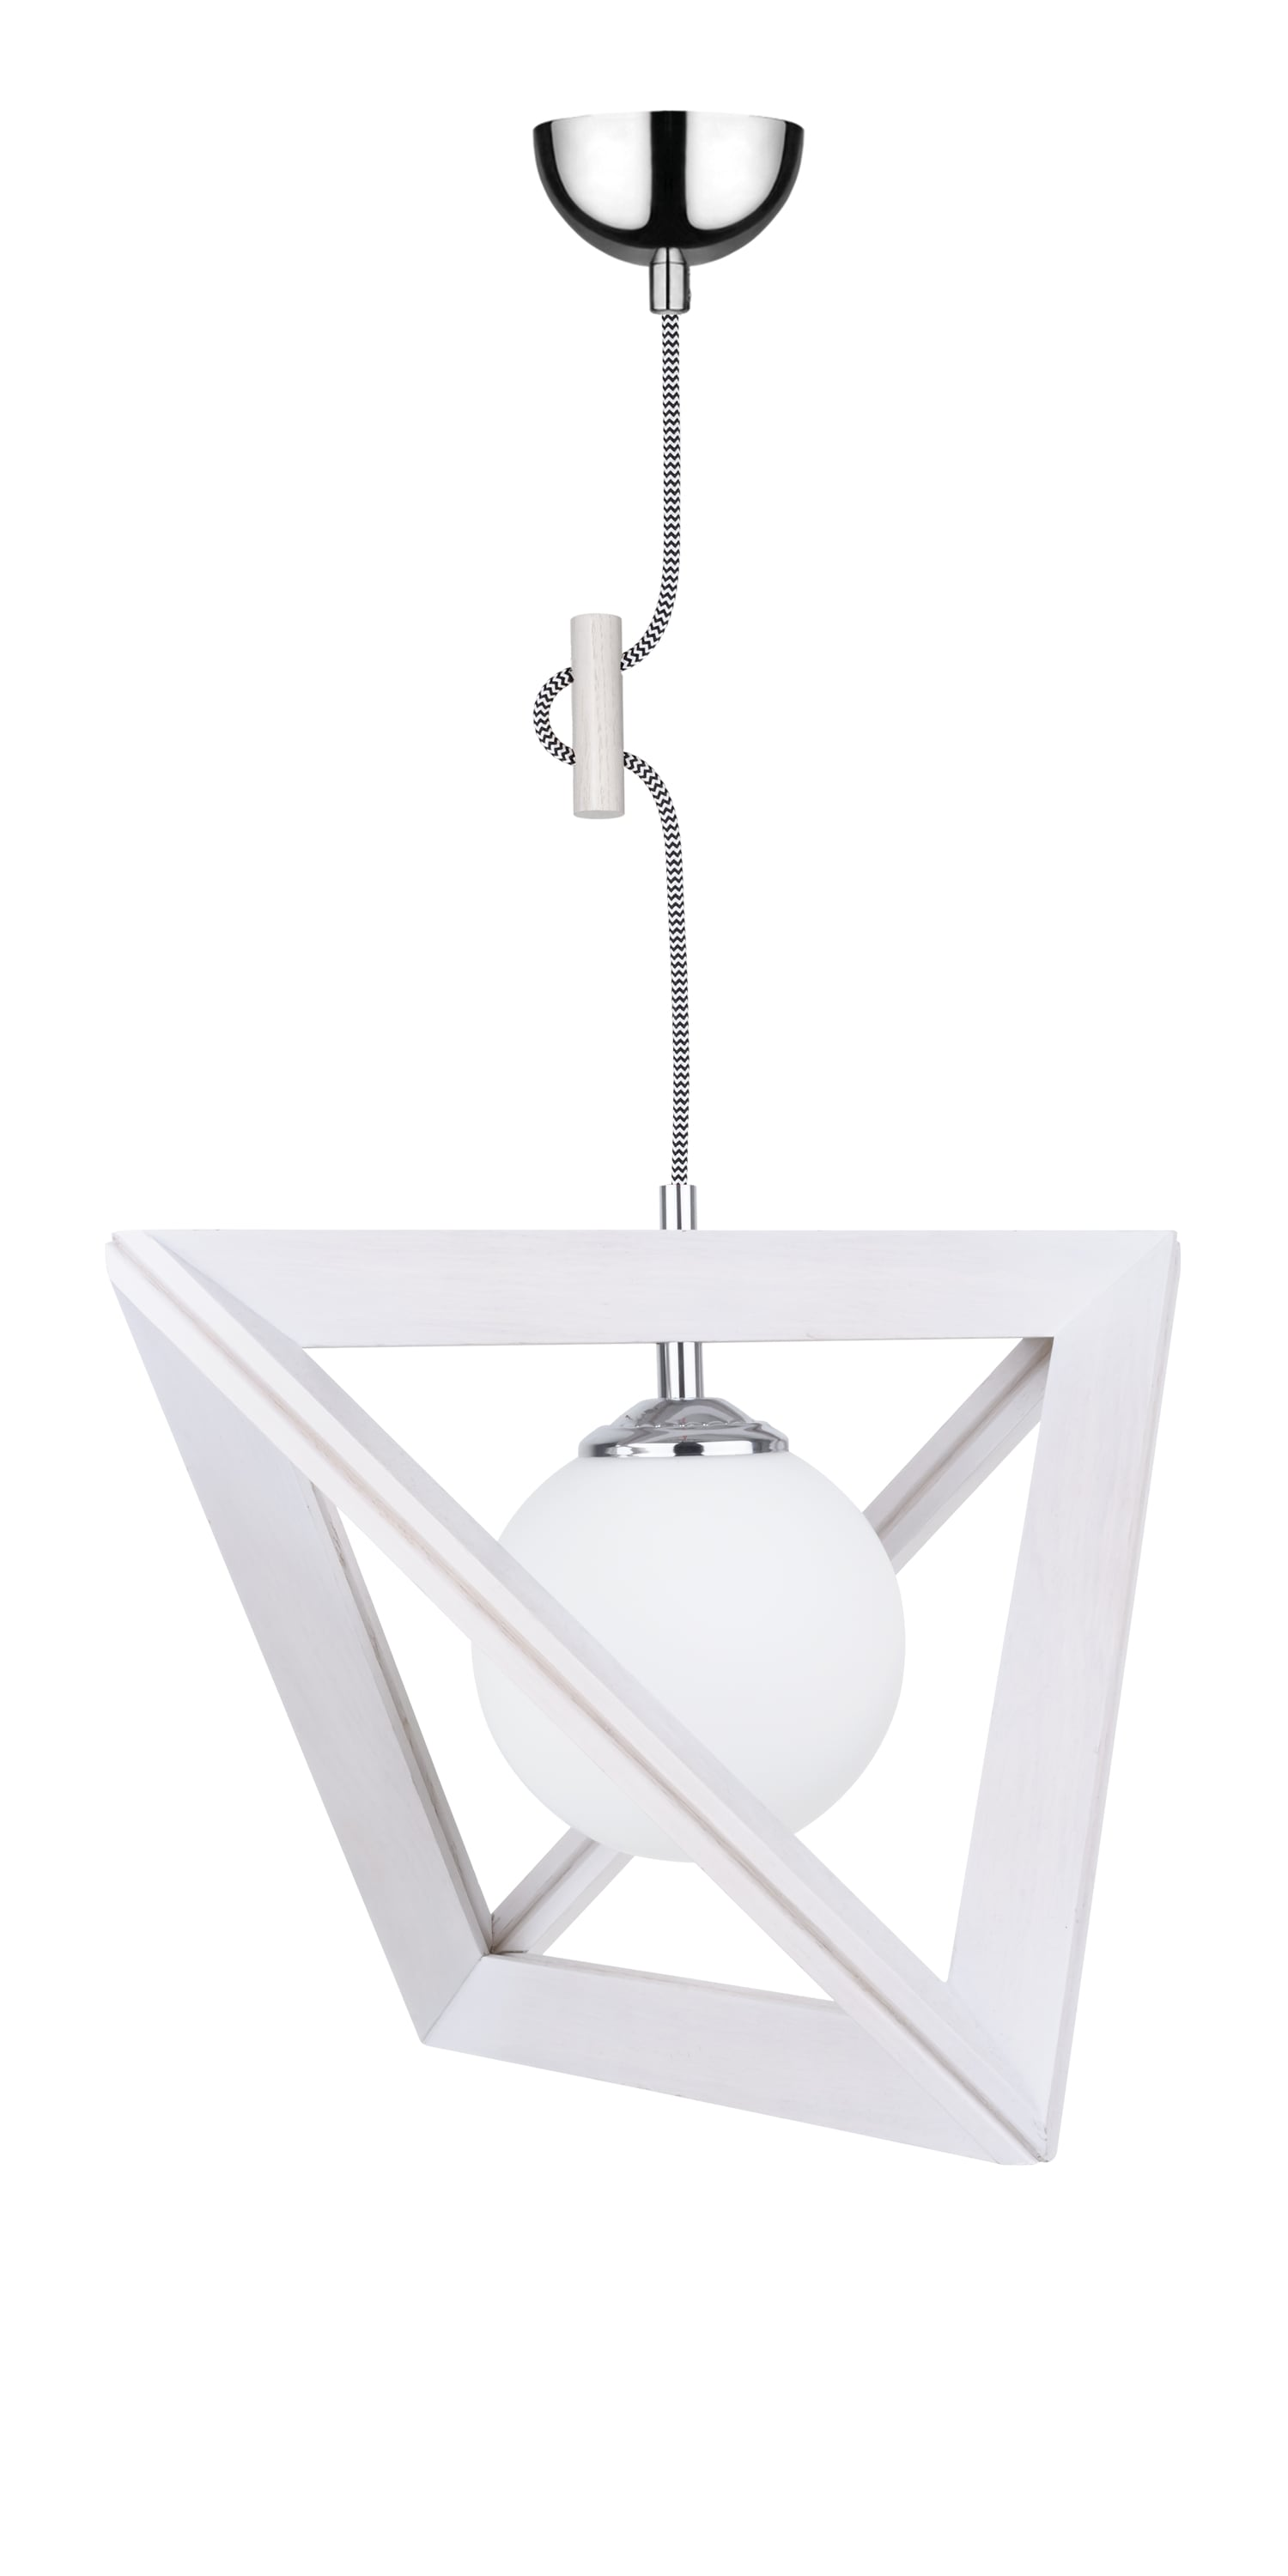 Hanging lamp Kula Trigonon dąb bielony / chrom / black and white E27 60W